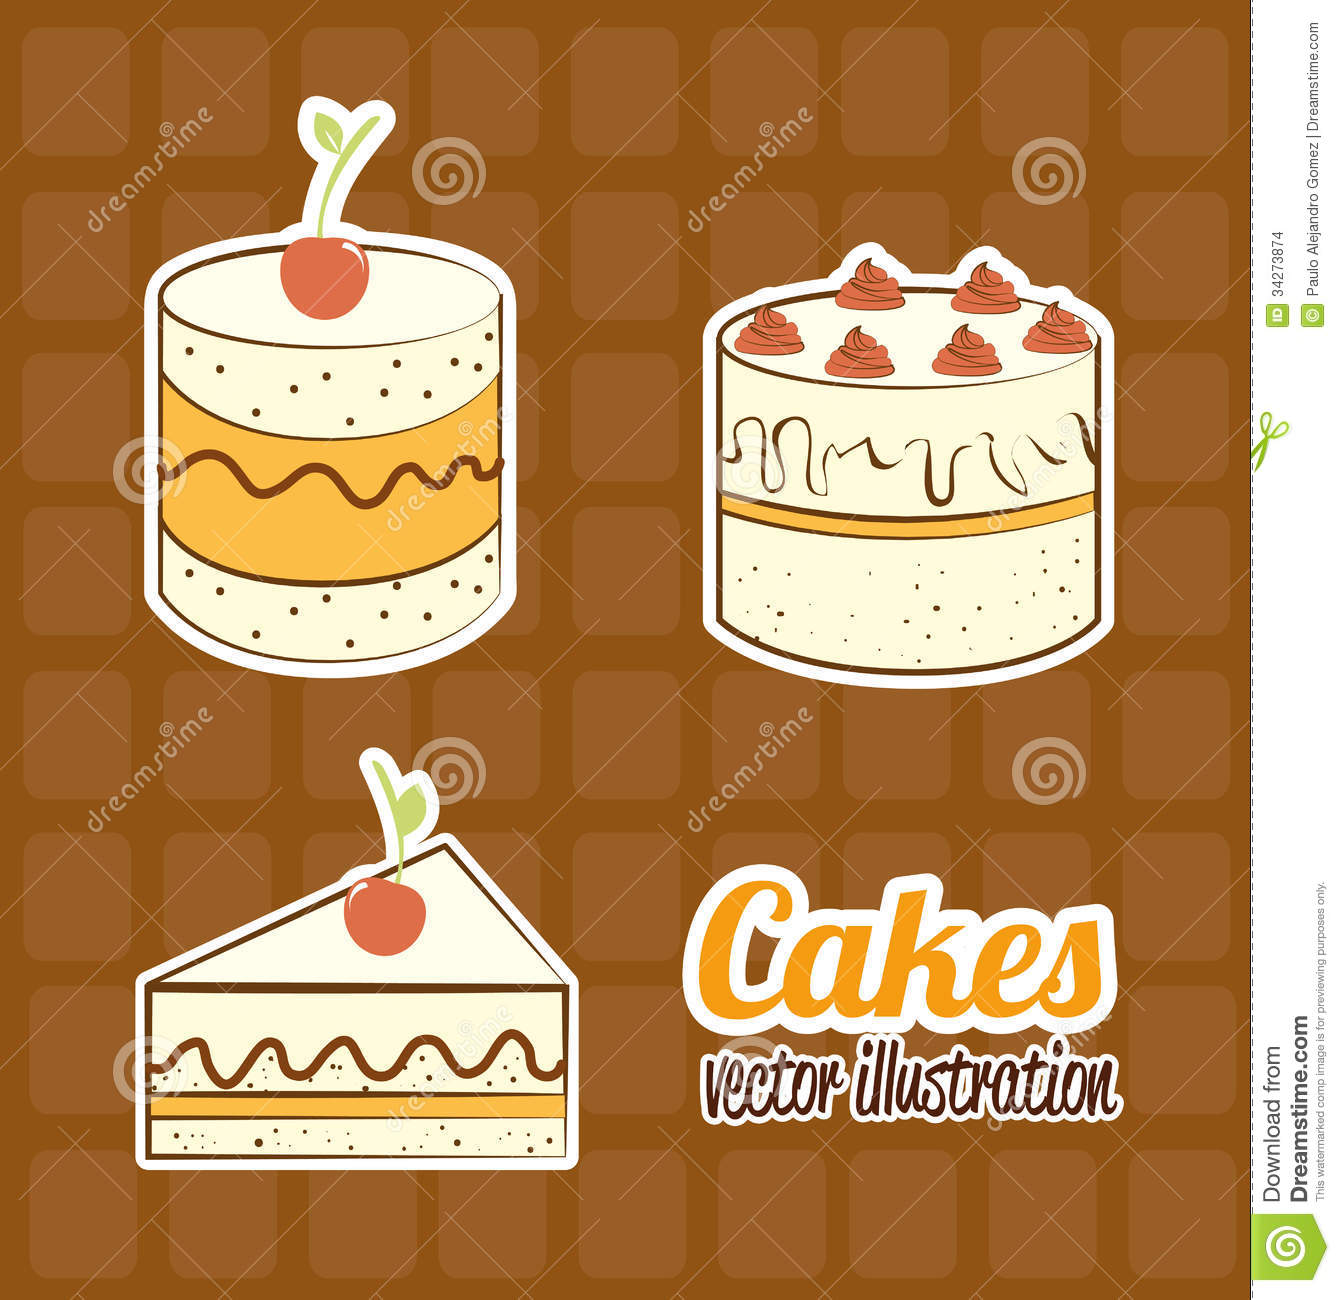 Cake Designs By Jackie Brown : Cakes Stock Images - Image: 34273874